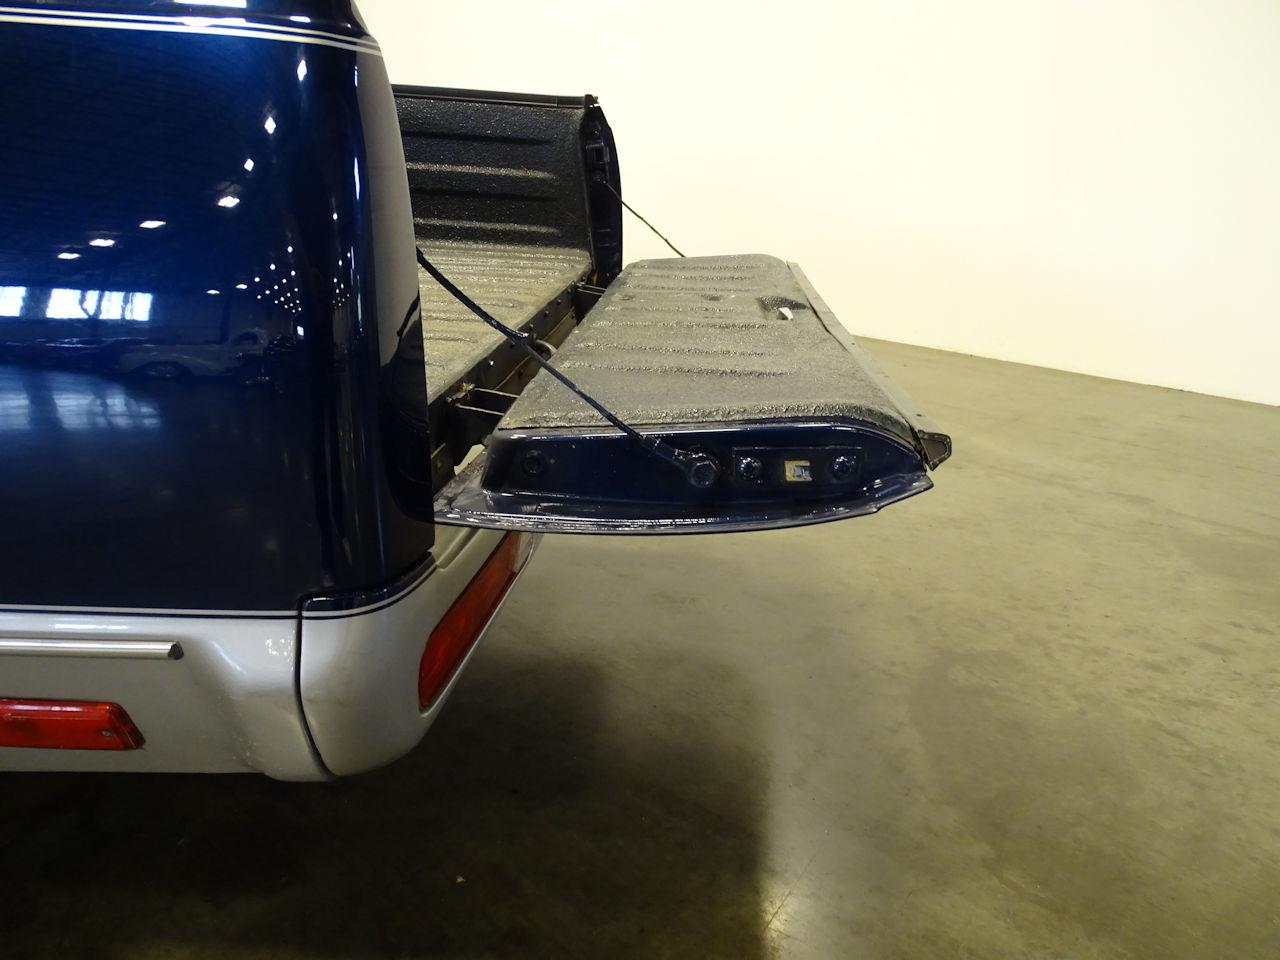 79 El Camino Led Tail Lights For Sale 1979 Chevrolet El Camino In La Vergne Tennessee